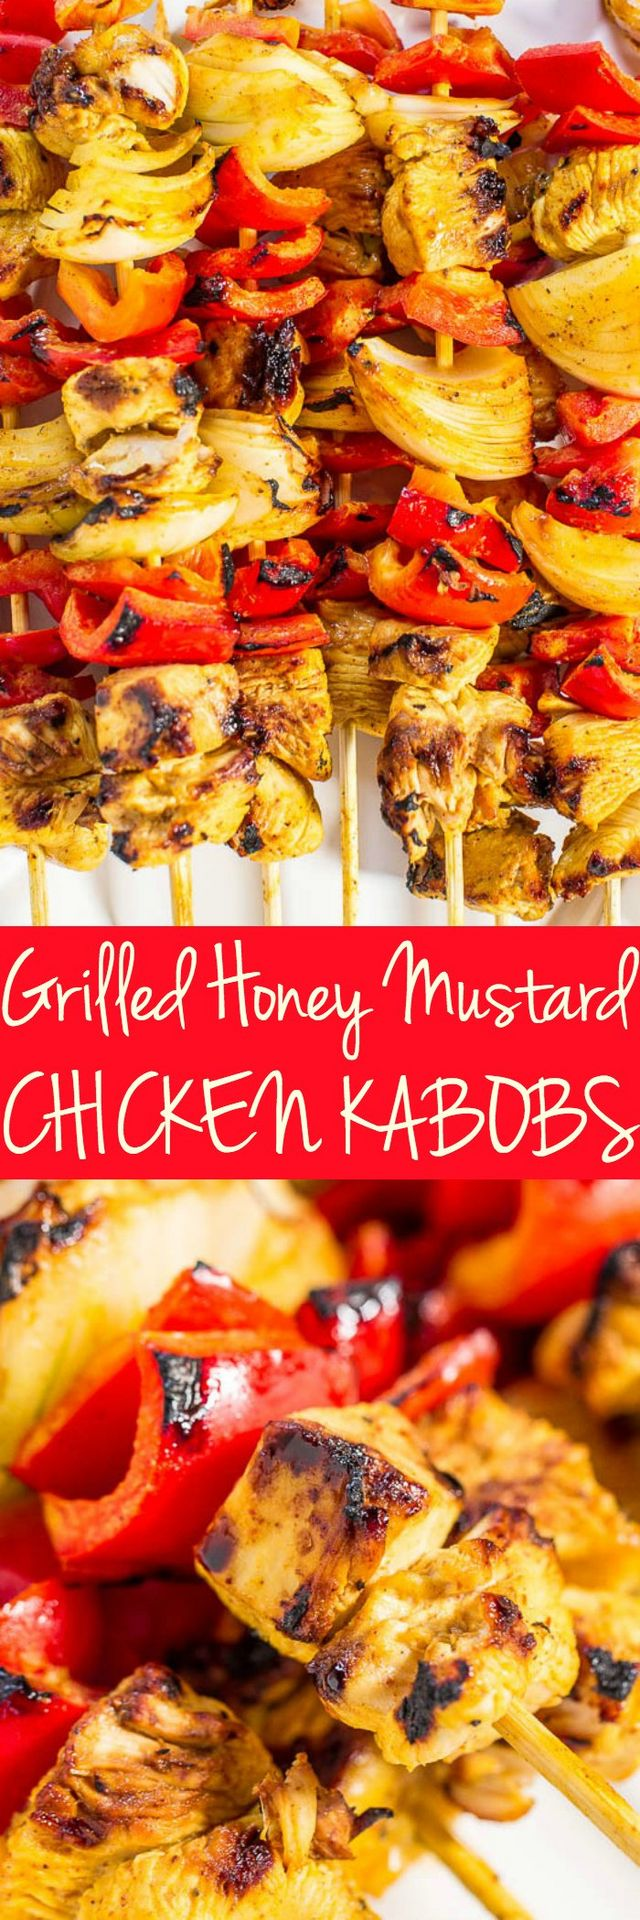 Grilled Honey Mustard Chicken Kabobs | Averie Cooks | Bloglovin'